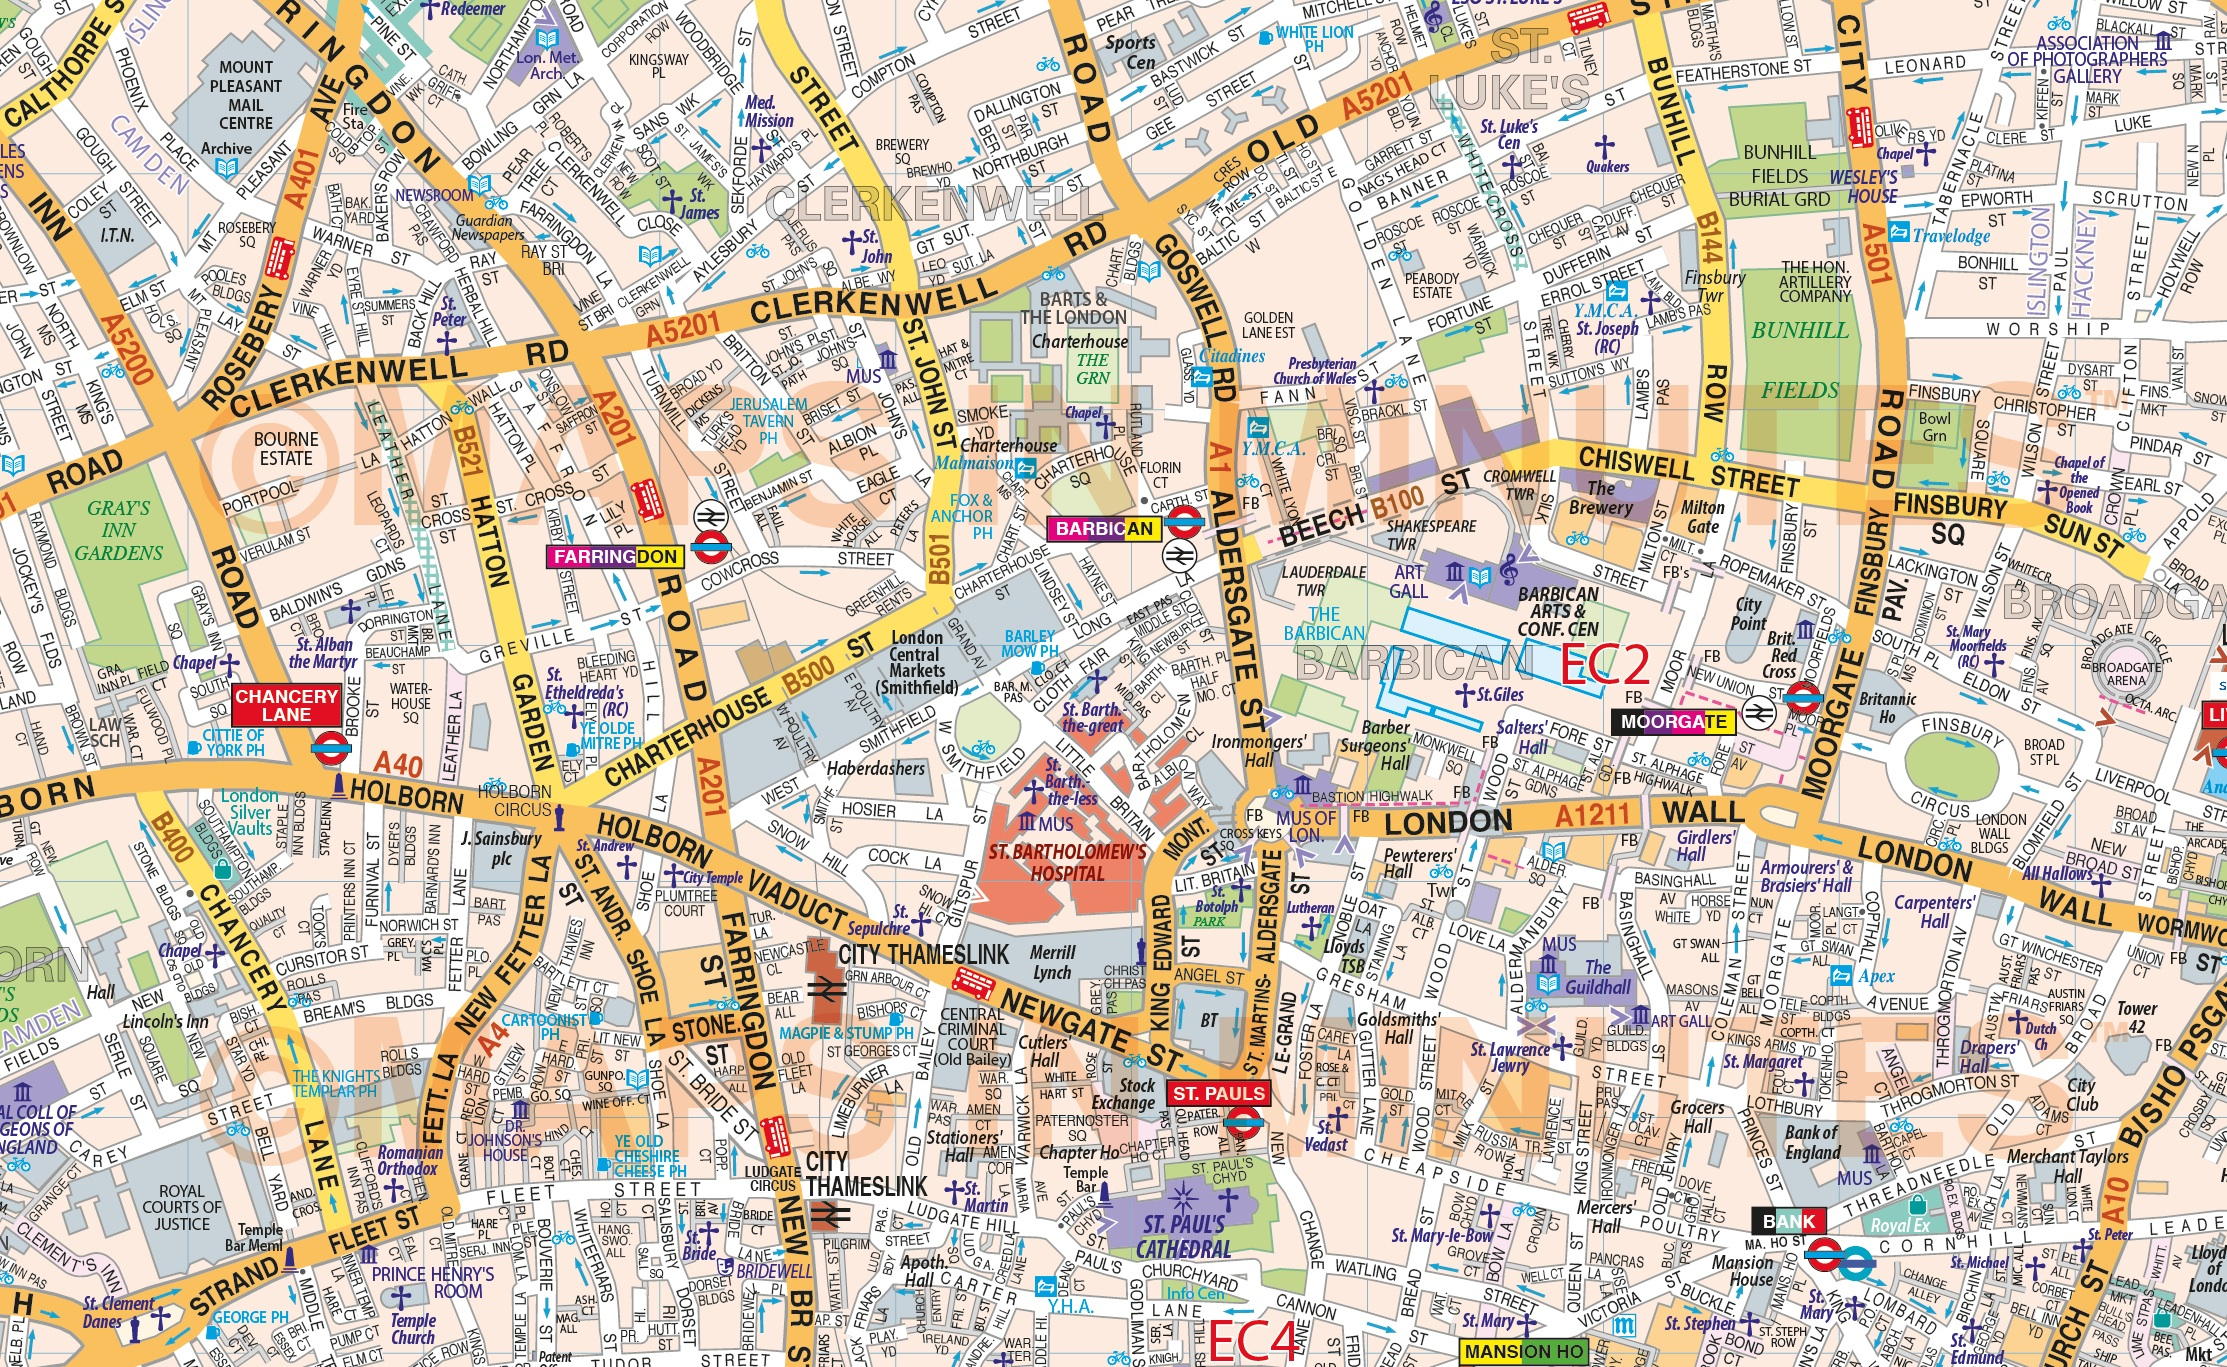 Printable Street Map Of Central London Printable Street Map Central - Printable Street Map Of London